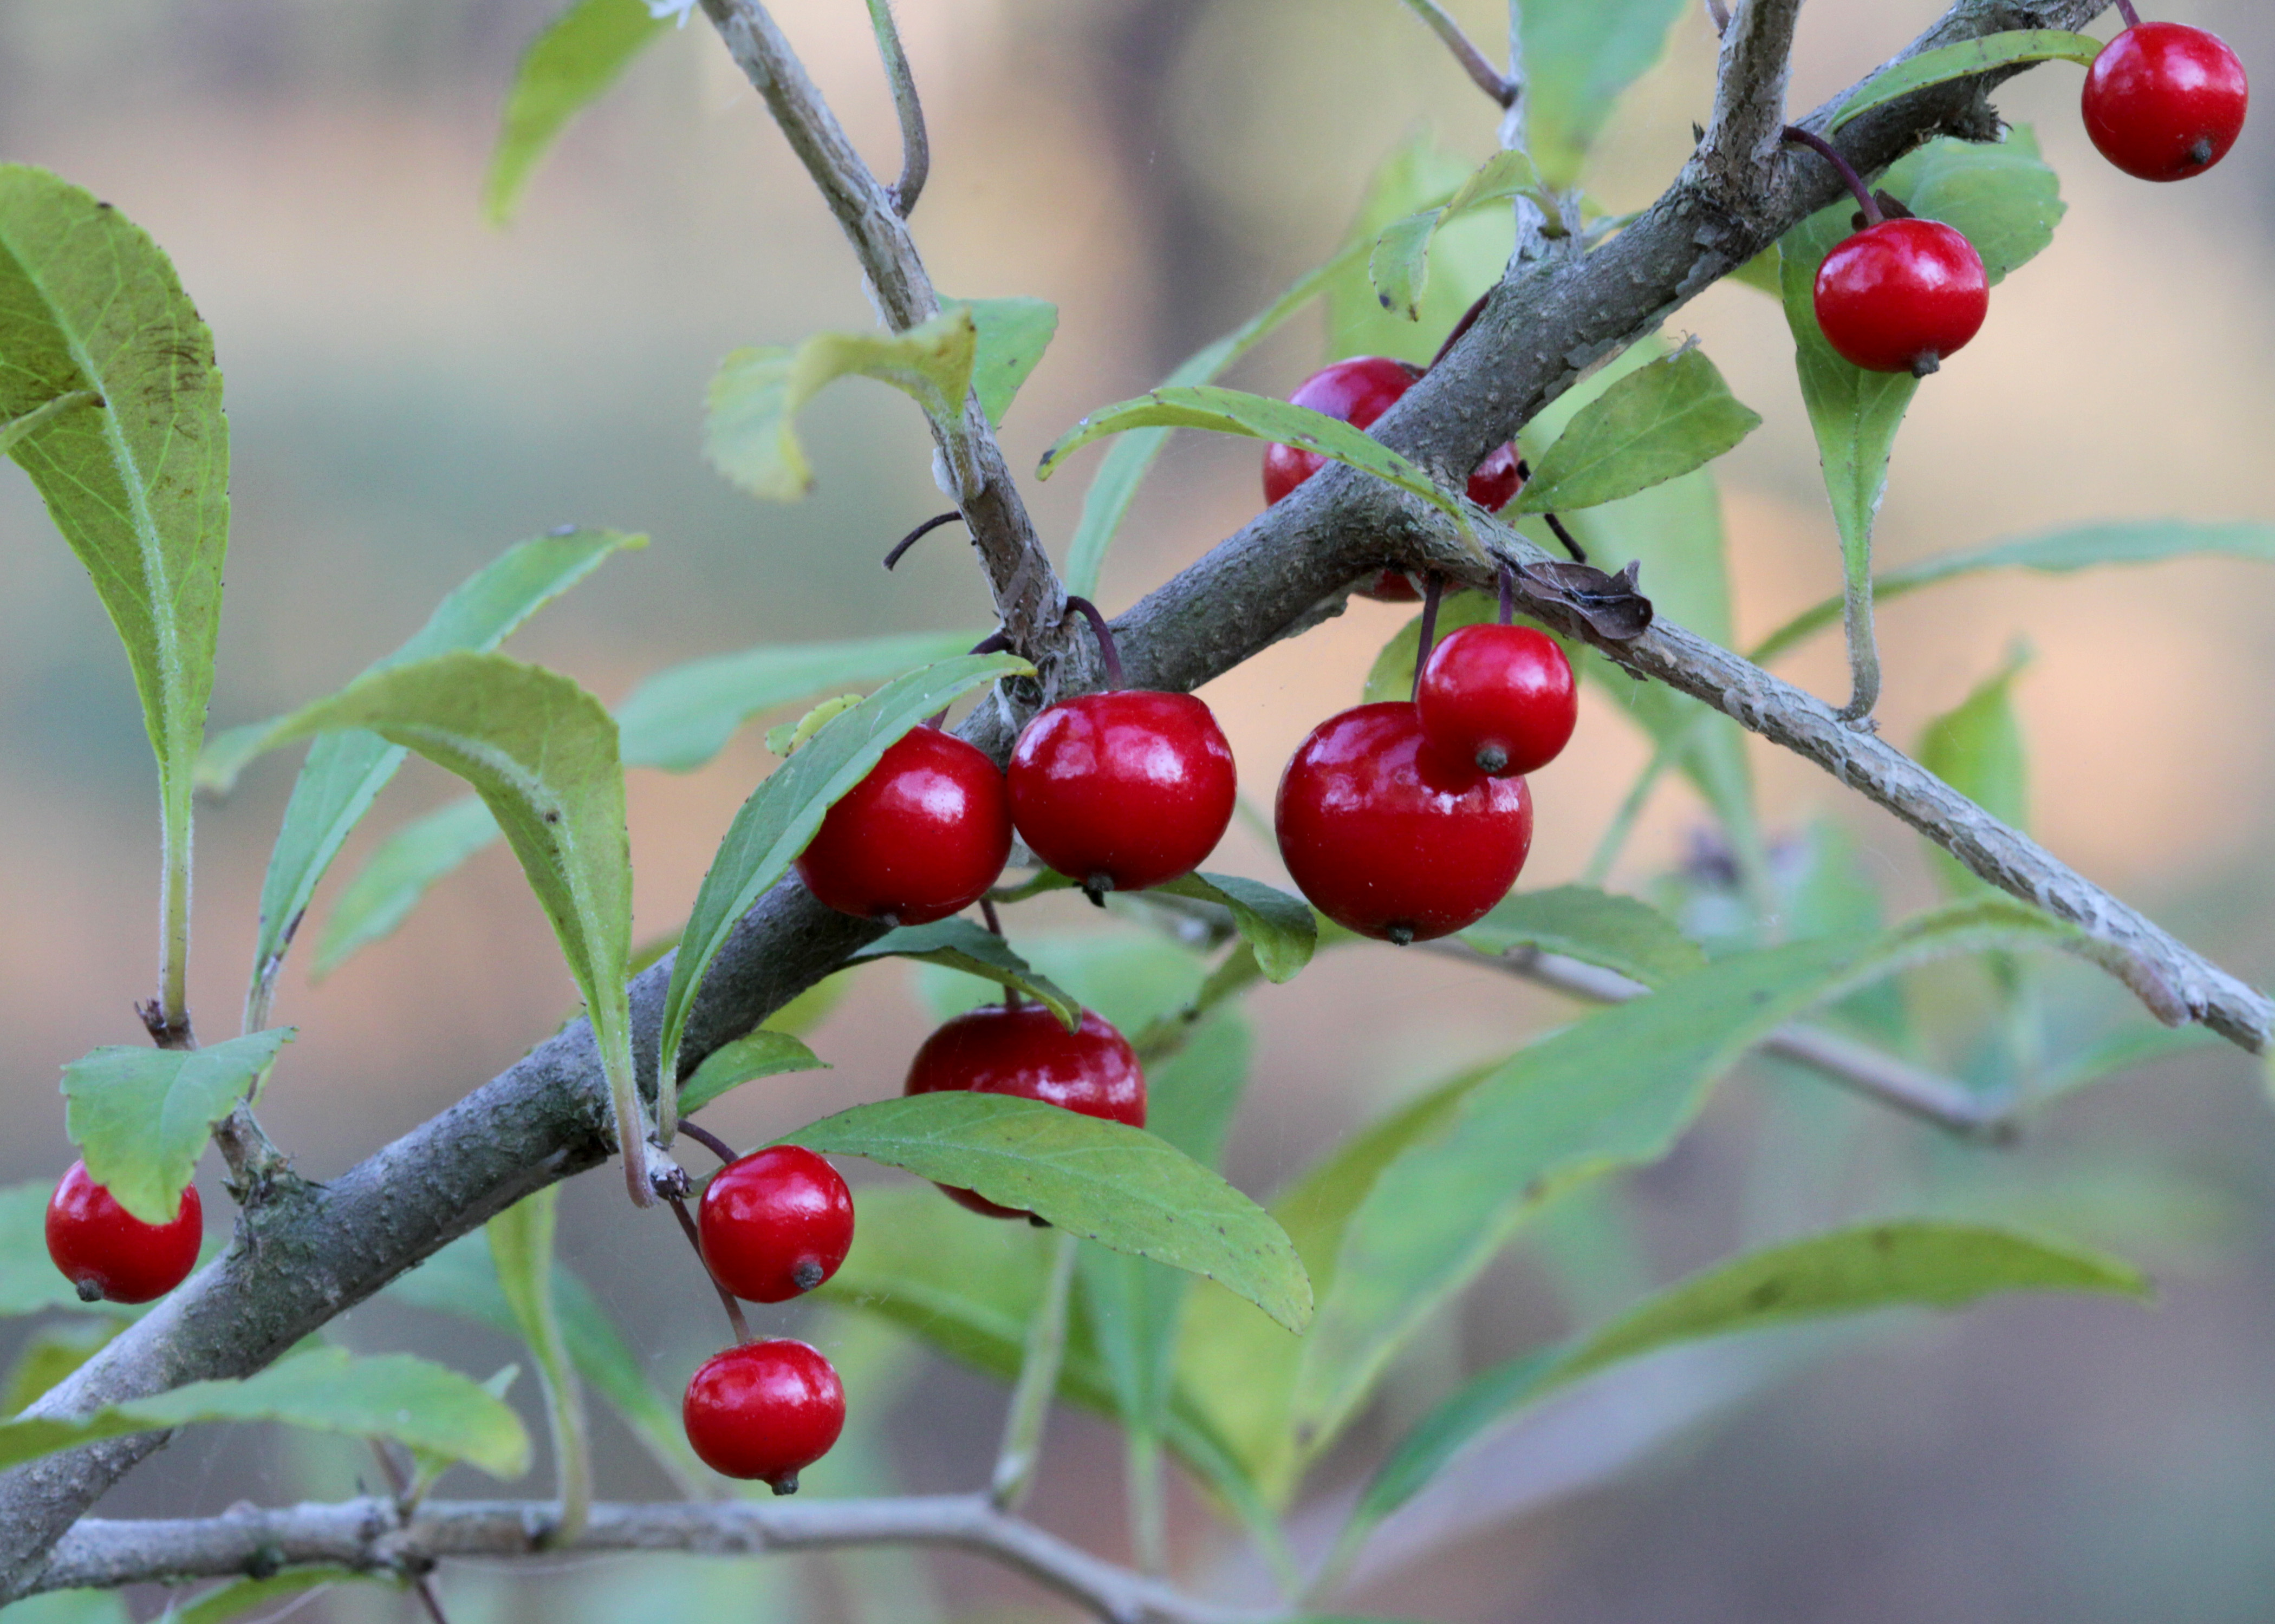 The Scientific Name is Ilex decidua var. decidua. You will likely hear them called Possumhaw Holly, Possum-haw. This picture shows the Fruits are shiny red drupes, round, 6-8 mm in diameter on pedicels 2 - 6 mm long. of Ilex decidua var. decidua